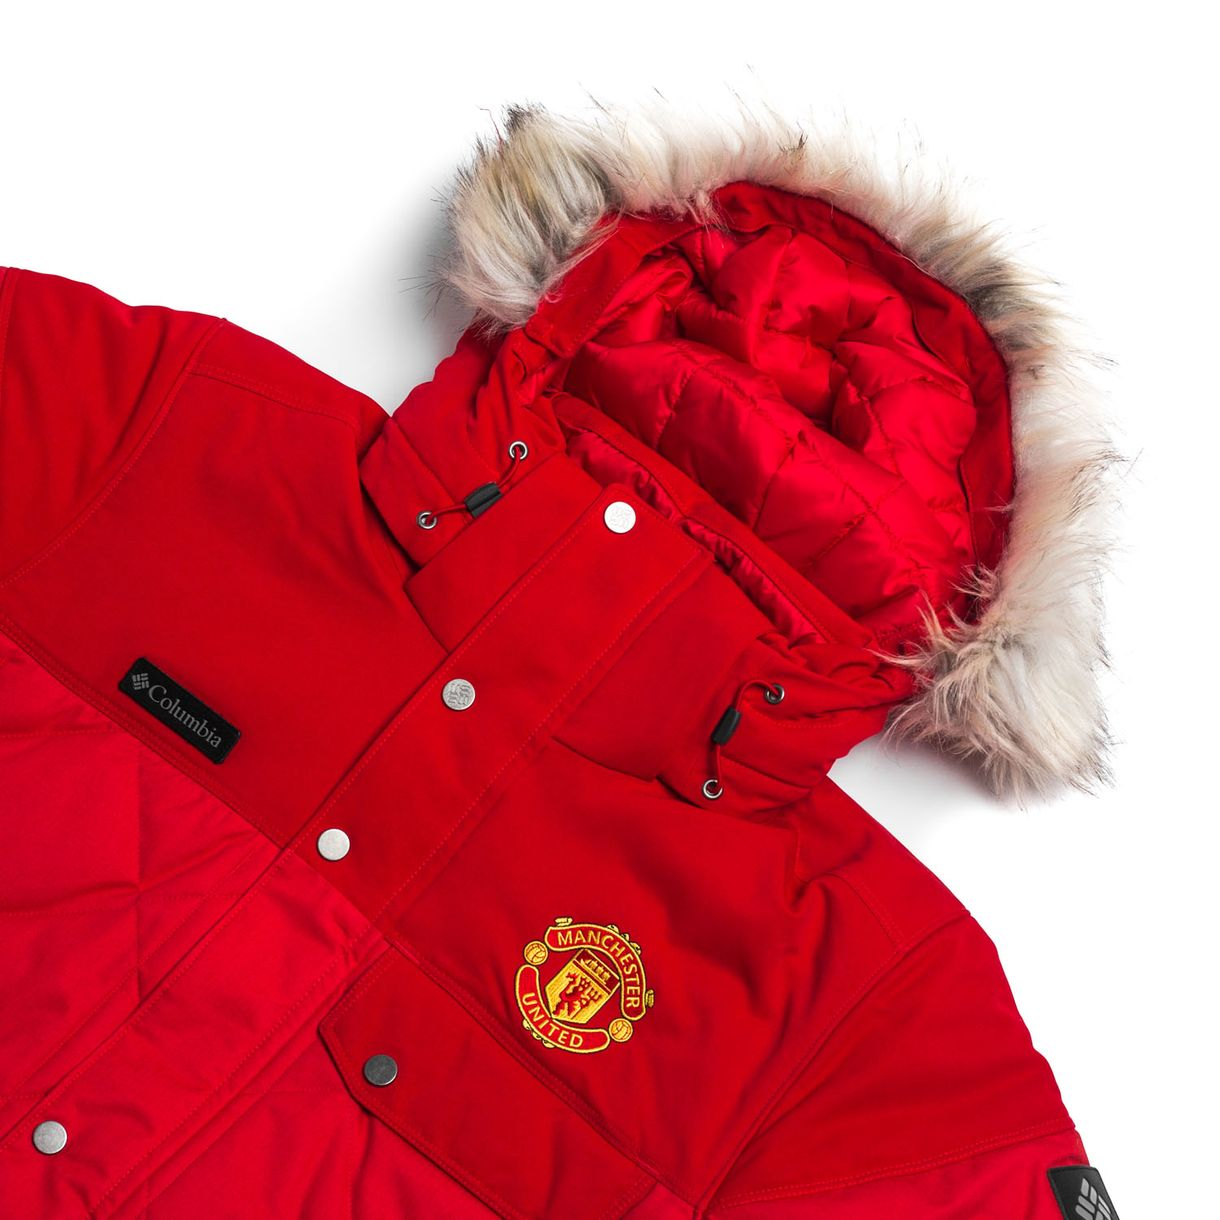 ... Click to enlarge image  manchester united x columbia jacket barlow pass 550 turbodown quilted cherrybomb b.jpg  ... 0ddc047c0a